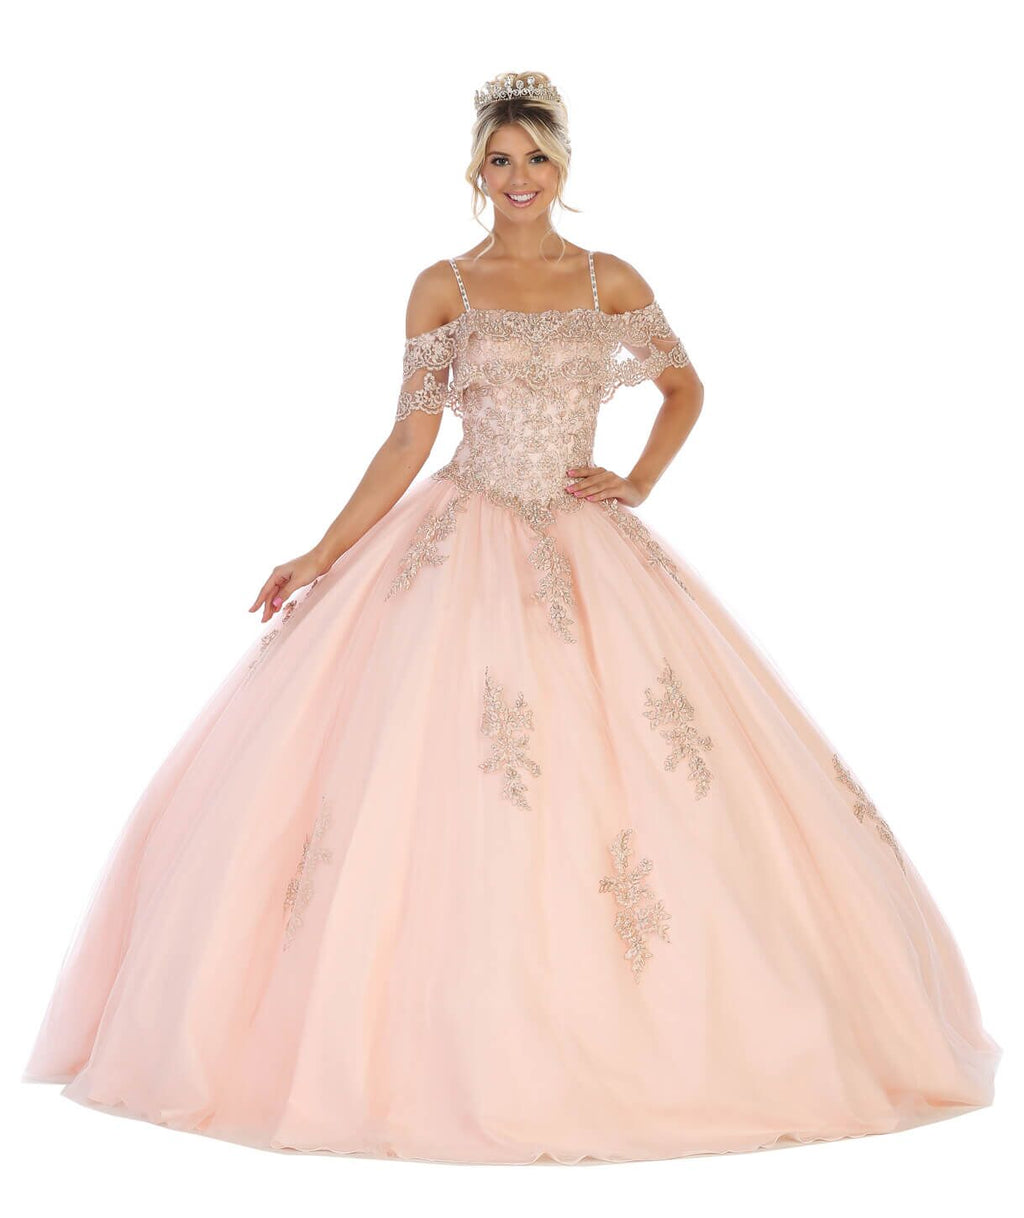 Sweet 16 Long Quinceanera Plus Size Dress - The Dress Outlet Blush May Queen